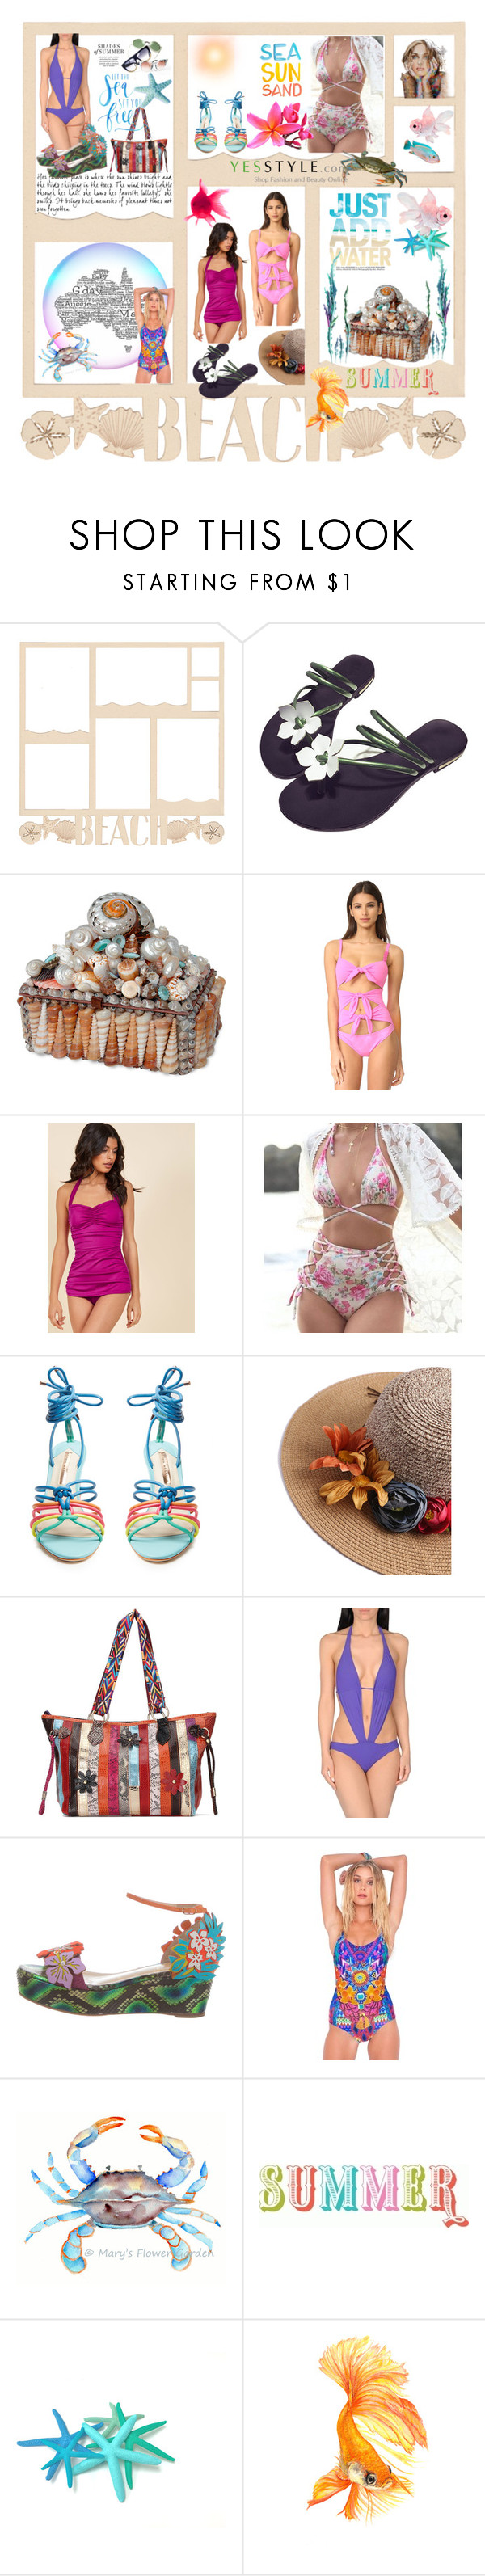 """Just add water 🦀🐠"" by lawvel ❤ liked on Polyvore featuring Moschino, Esther Williams, Dolce&Gabbana, Sophia Webster, Christian Louboutin, Luli Fama and Aquarelle"